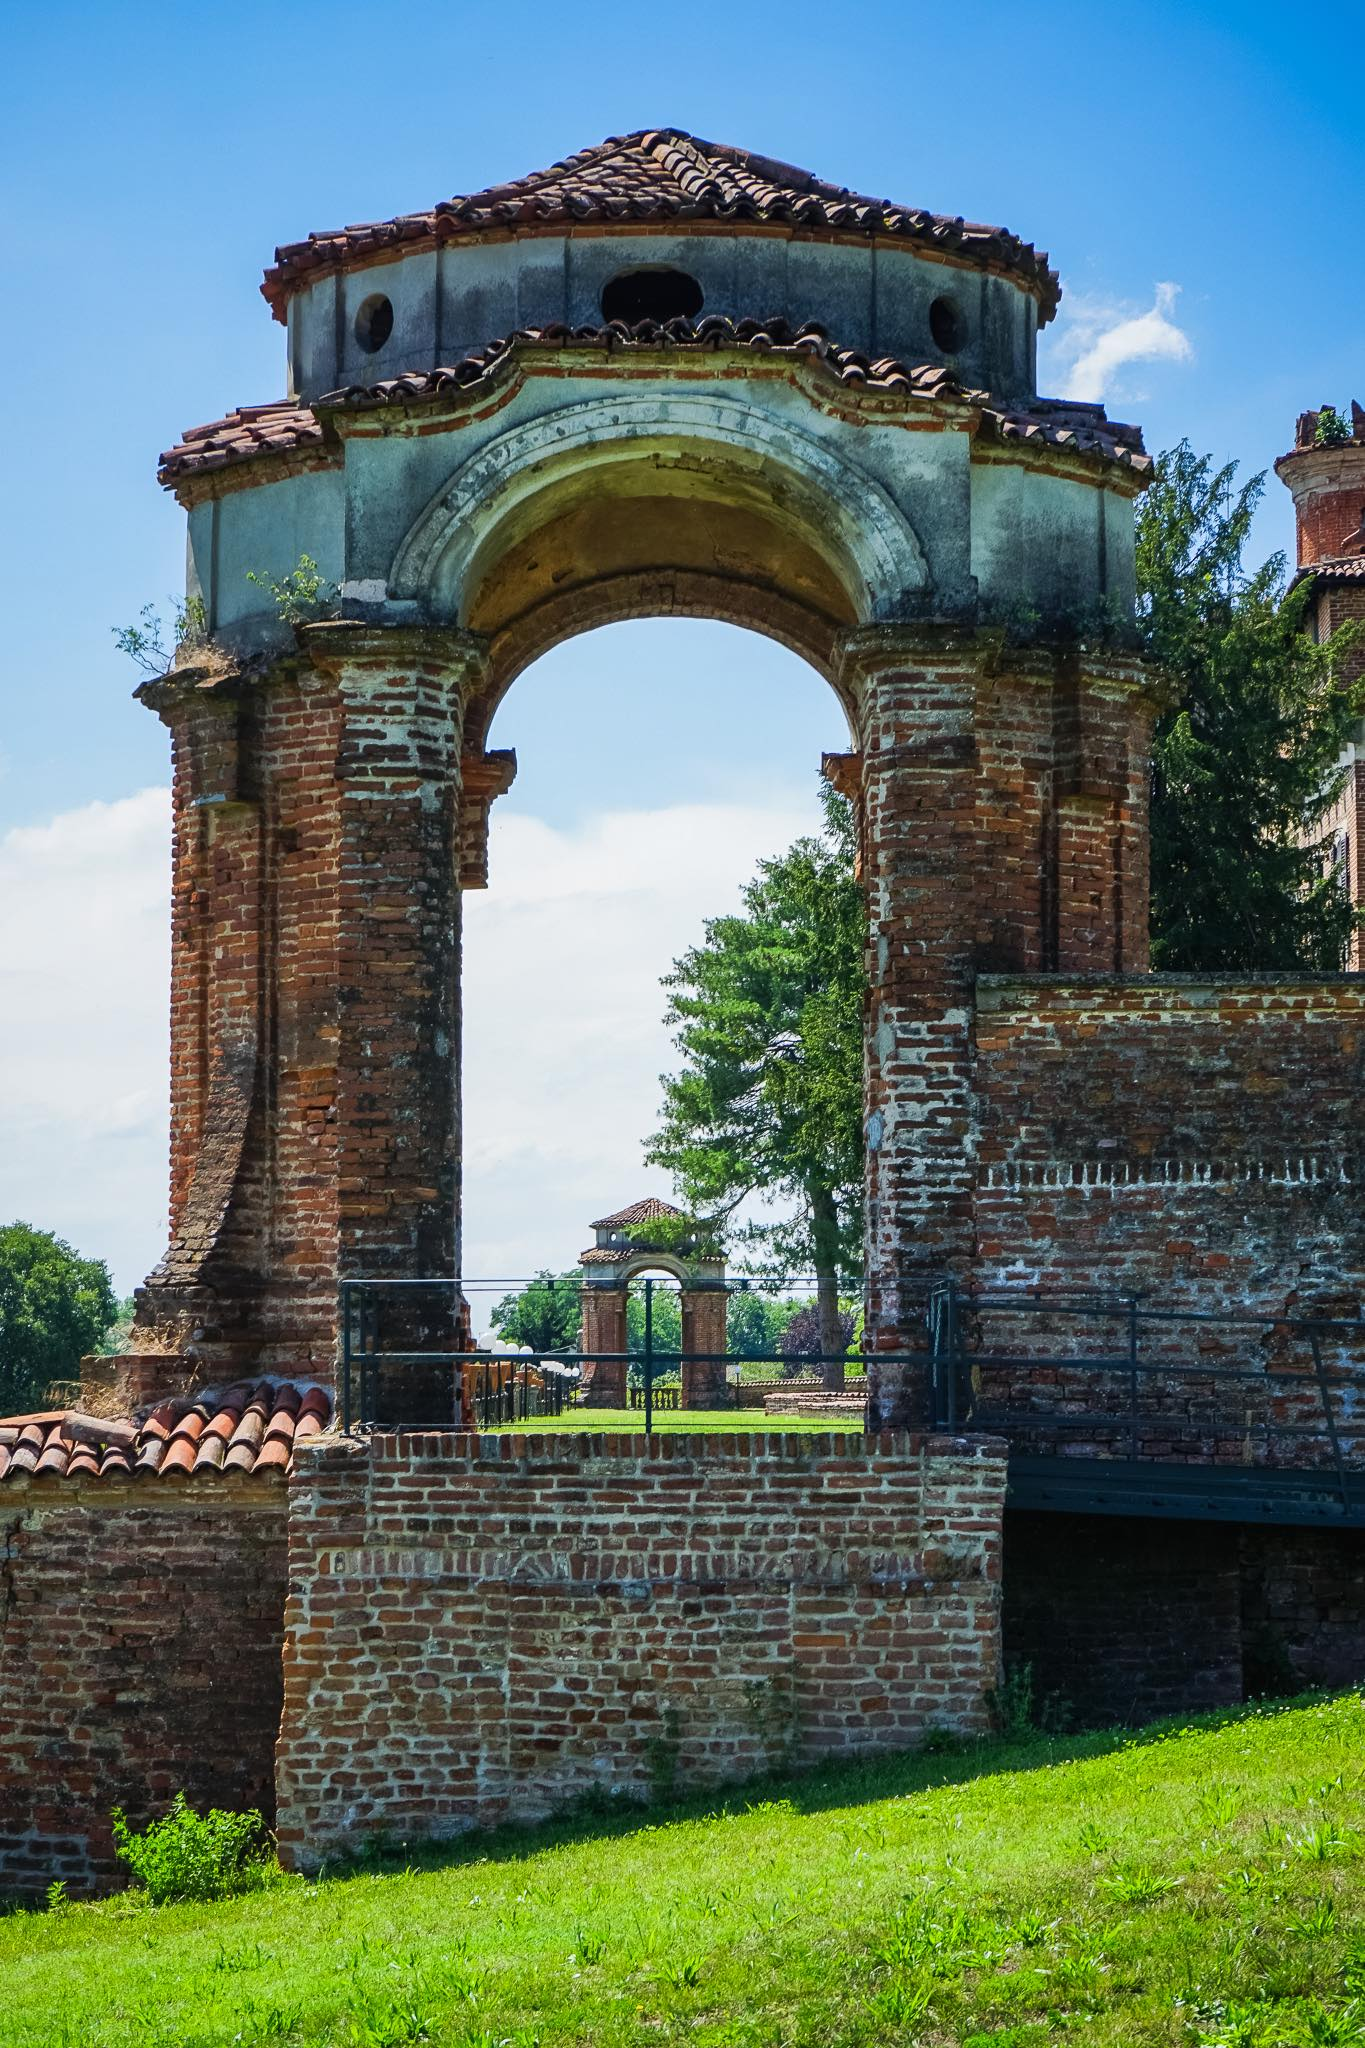 Architectural details in the park of the Castle of Chignolo Po in Lombardy